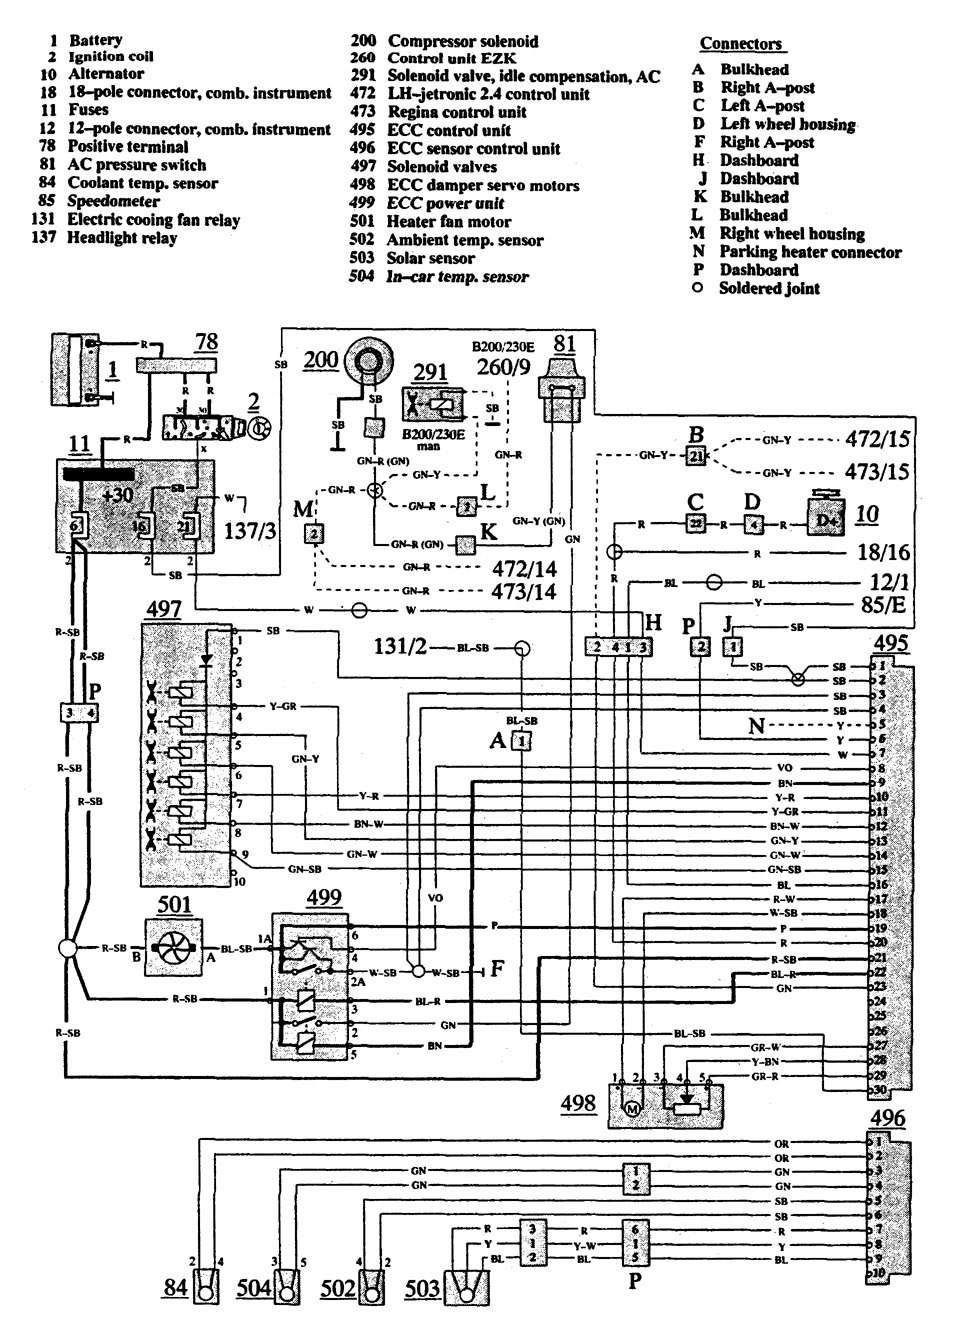 1995 Volvo 940 Radio Wiring - Wiring Diagram 500 on volvo 240 window relay installation, volvo gl wagon, lexus fuse diagram, mini fuse diagram, dodge fuse diagram, toyota fuse diagram, scion fuse diagram, volvo fuses and relays, isuzu fuse diagram, ac fuse diagram, freightliner fuse diagram, mgb fuse diagram, volvo truck fuse box location, buick fuse diagram, volvo s80 fuse box location, jaguar fuse diagram, bass tracker fuse diagram, ford fuse diagram, miata fuse diagram, bmw fuse diagram,